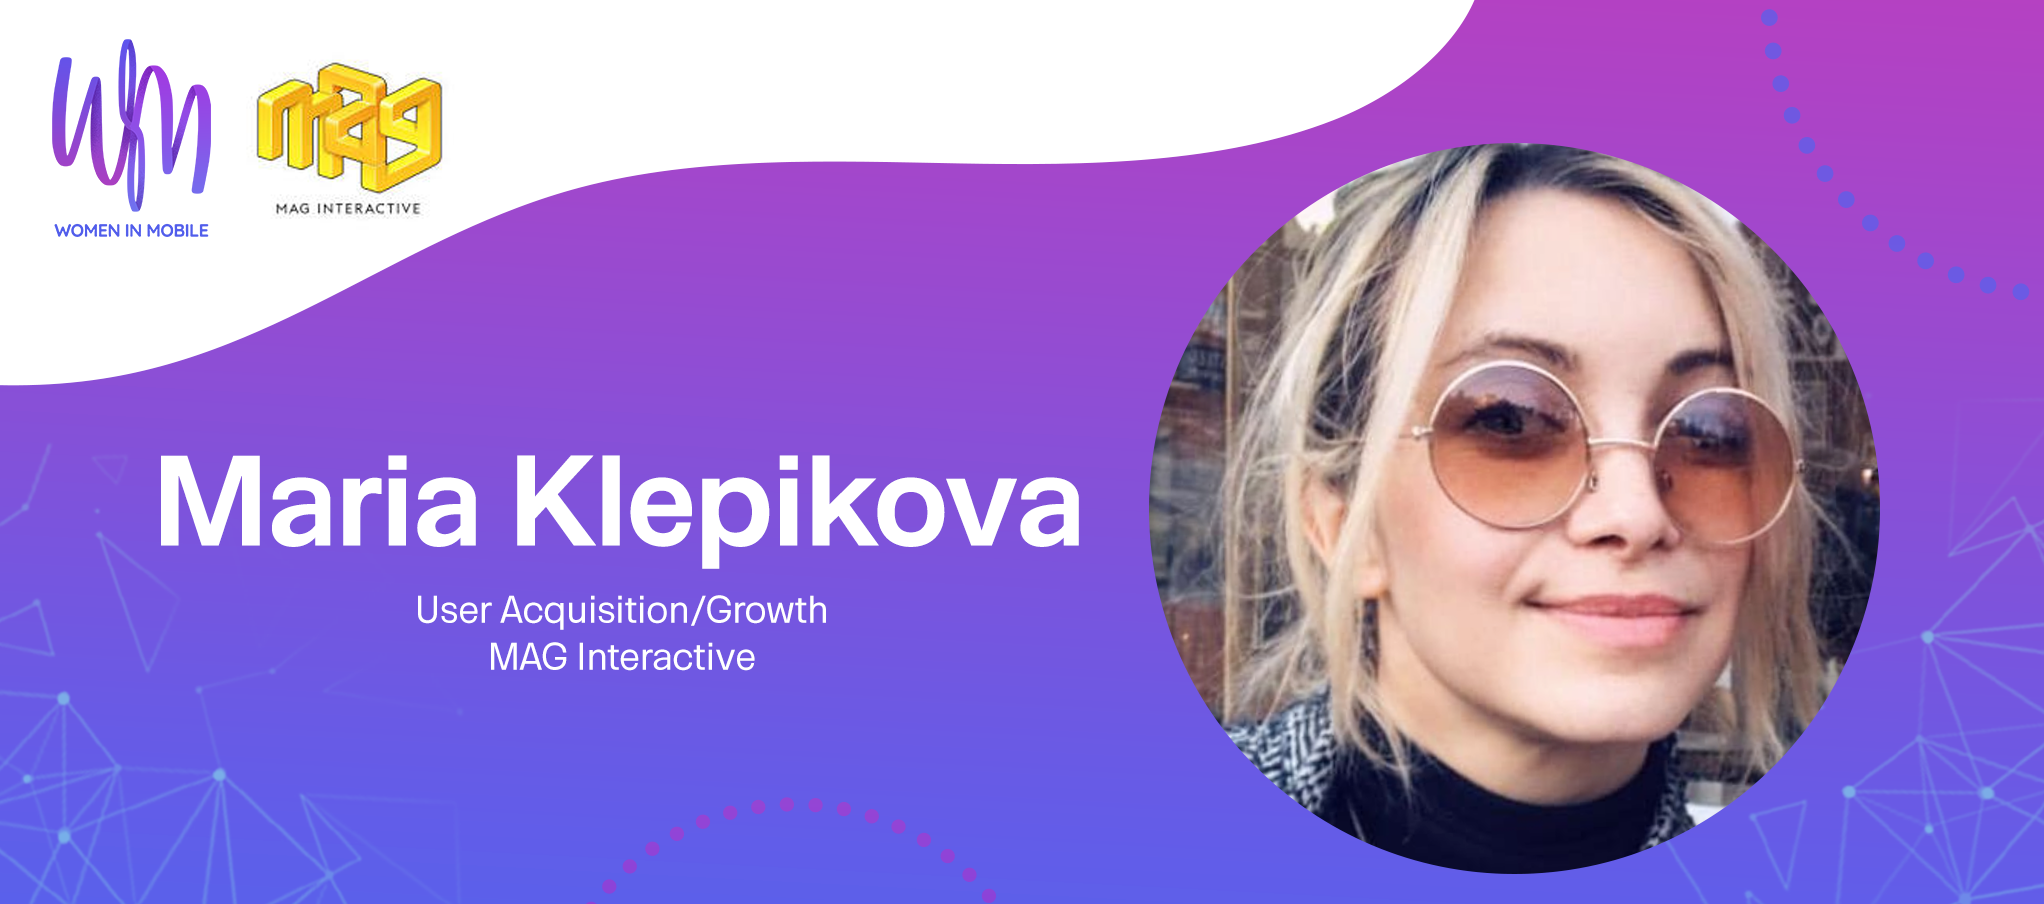 Maria Klepikova, User Acquisition/Growth at MAG Interactive at Aarki's Women in Mobile series